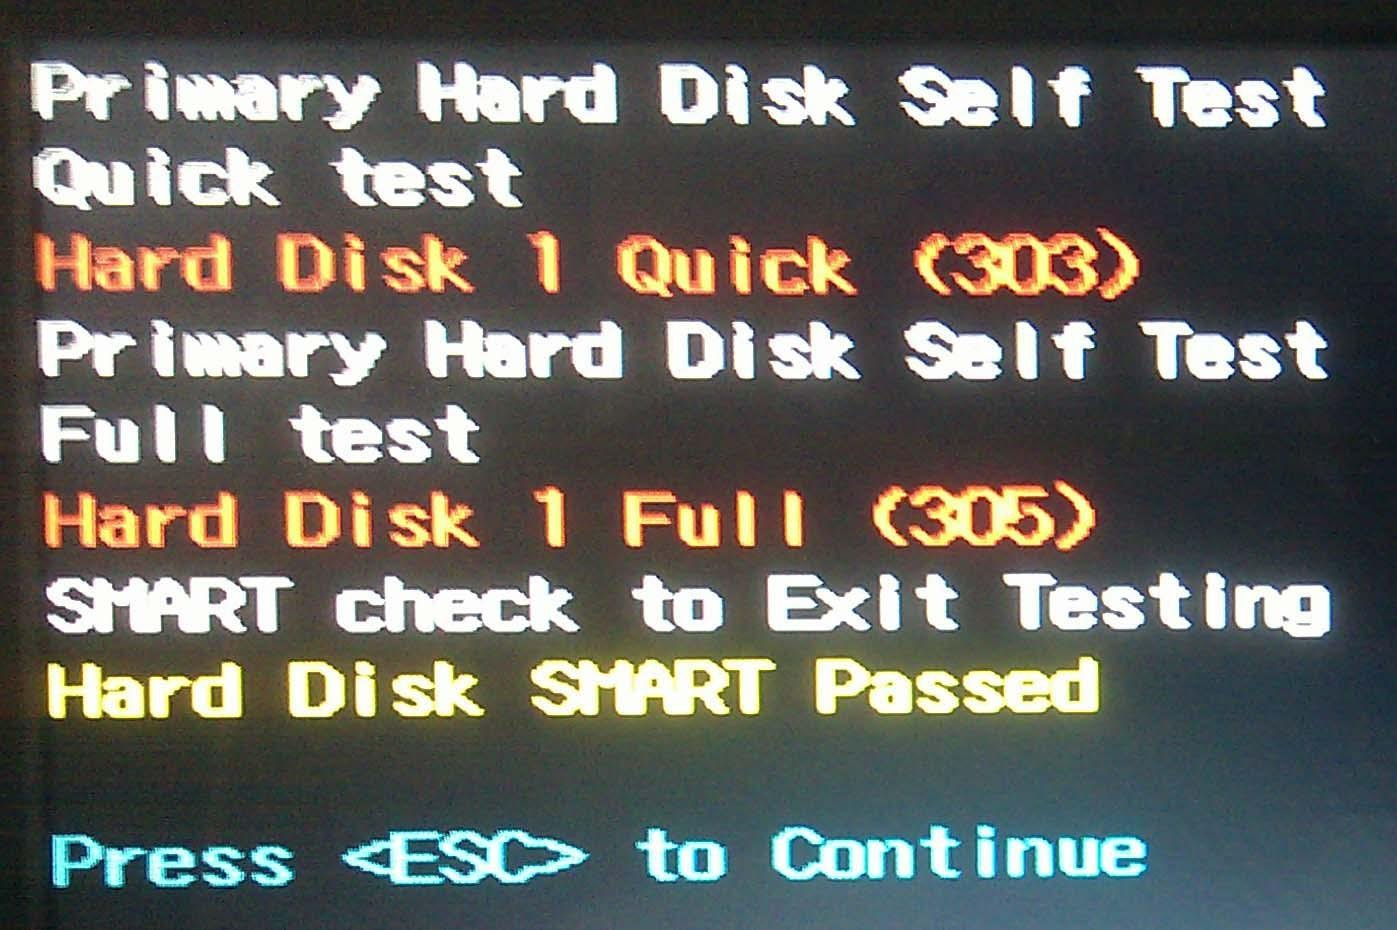 How to Deal with Hard Disk 1 Quick (303) Error?